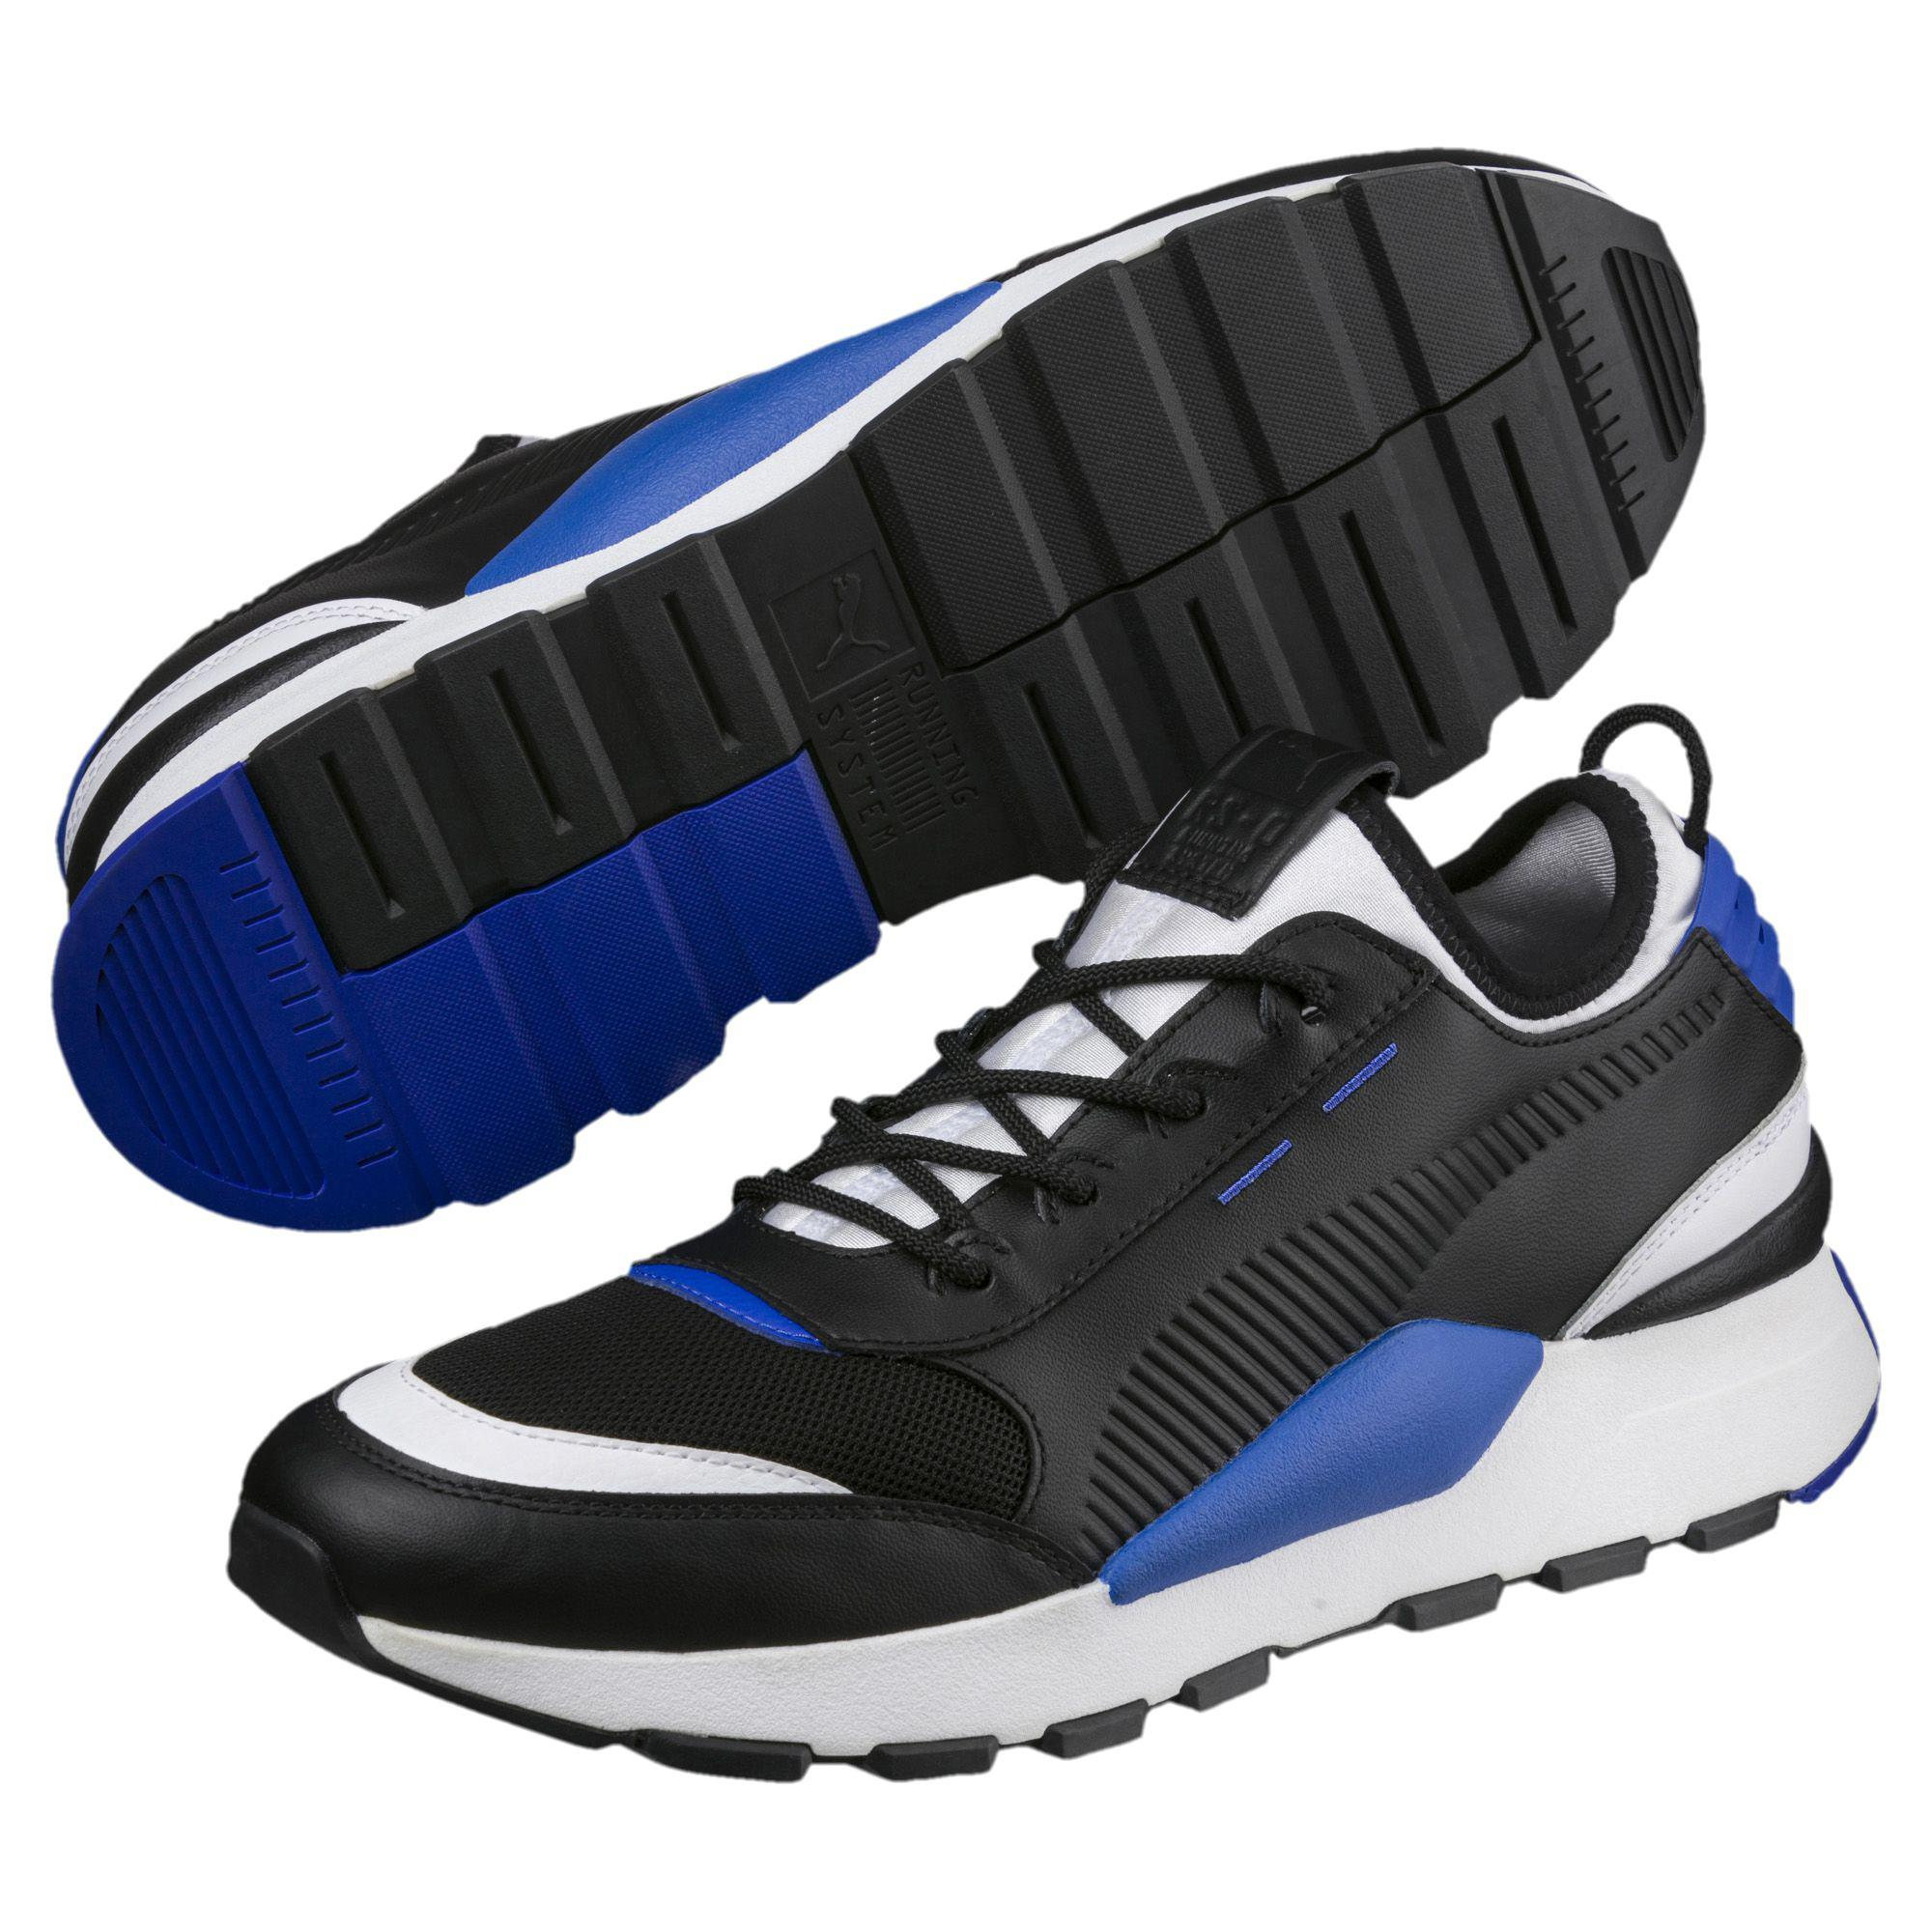 04381df1faf Lyst - PUMA Rs-0 Sound Men s Sneakers in Blue for Men - Save 22%